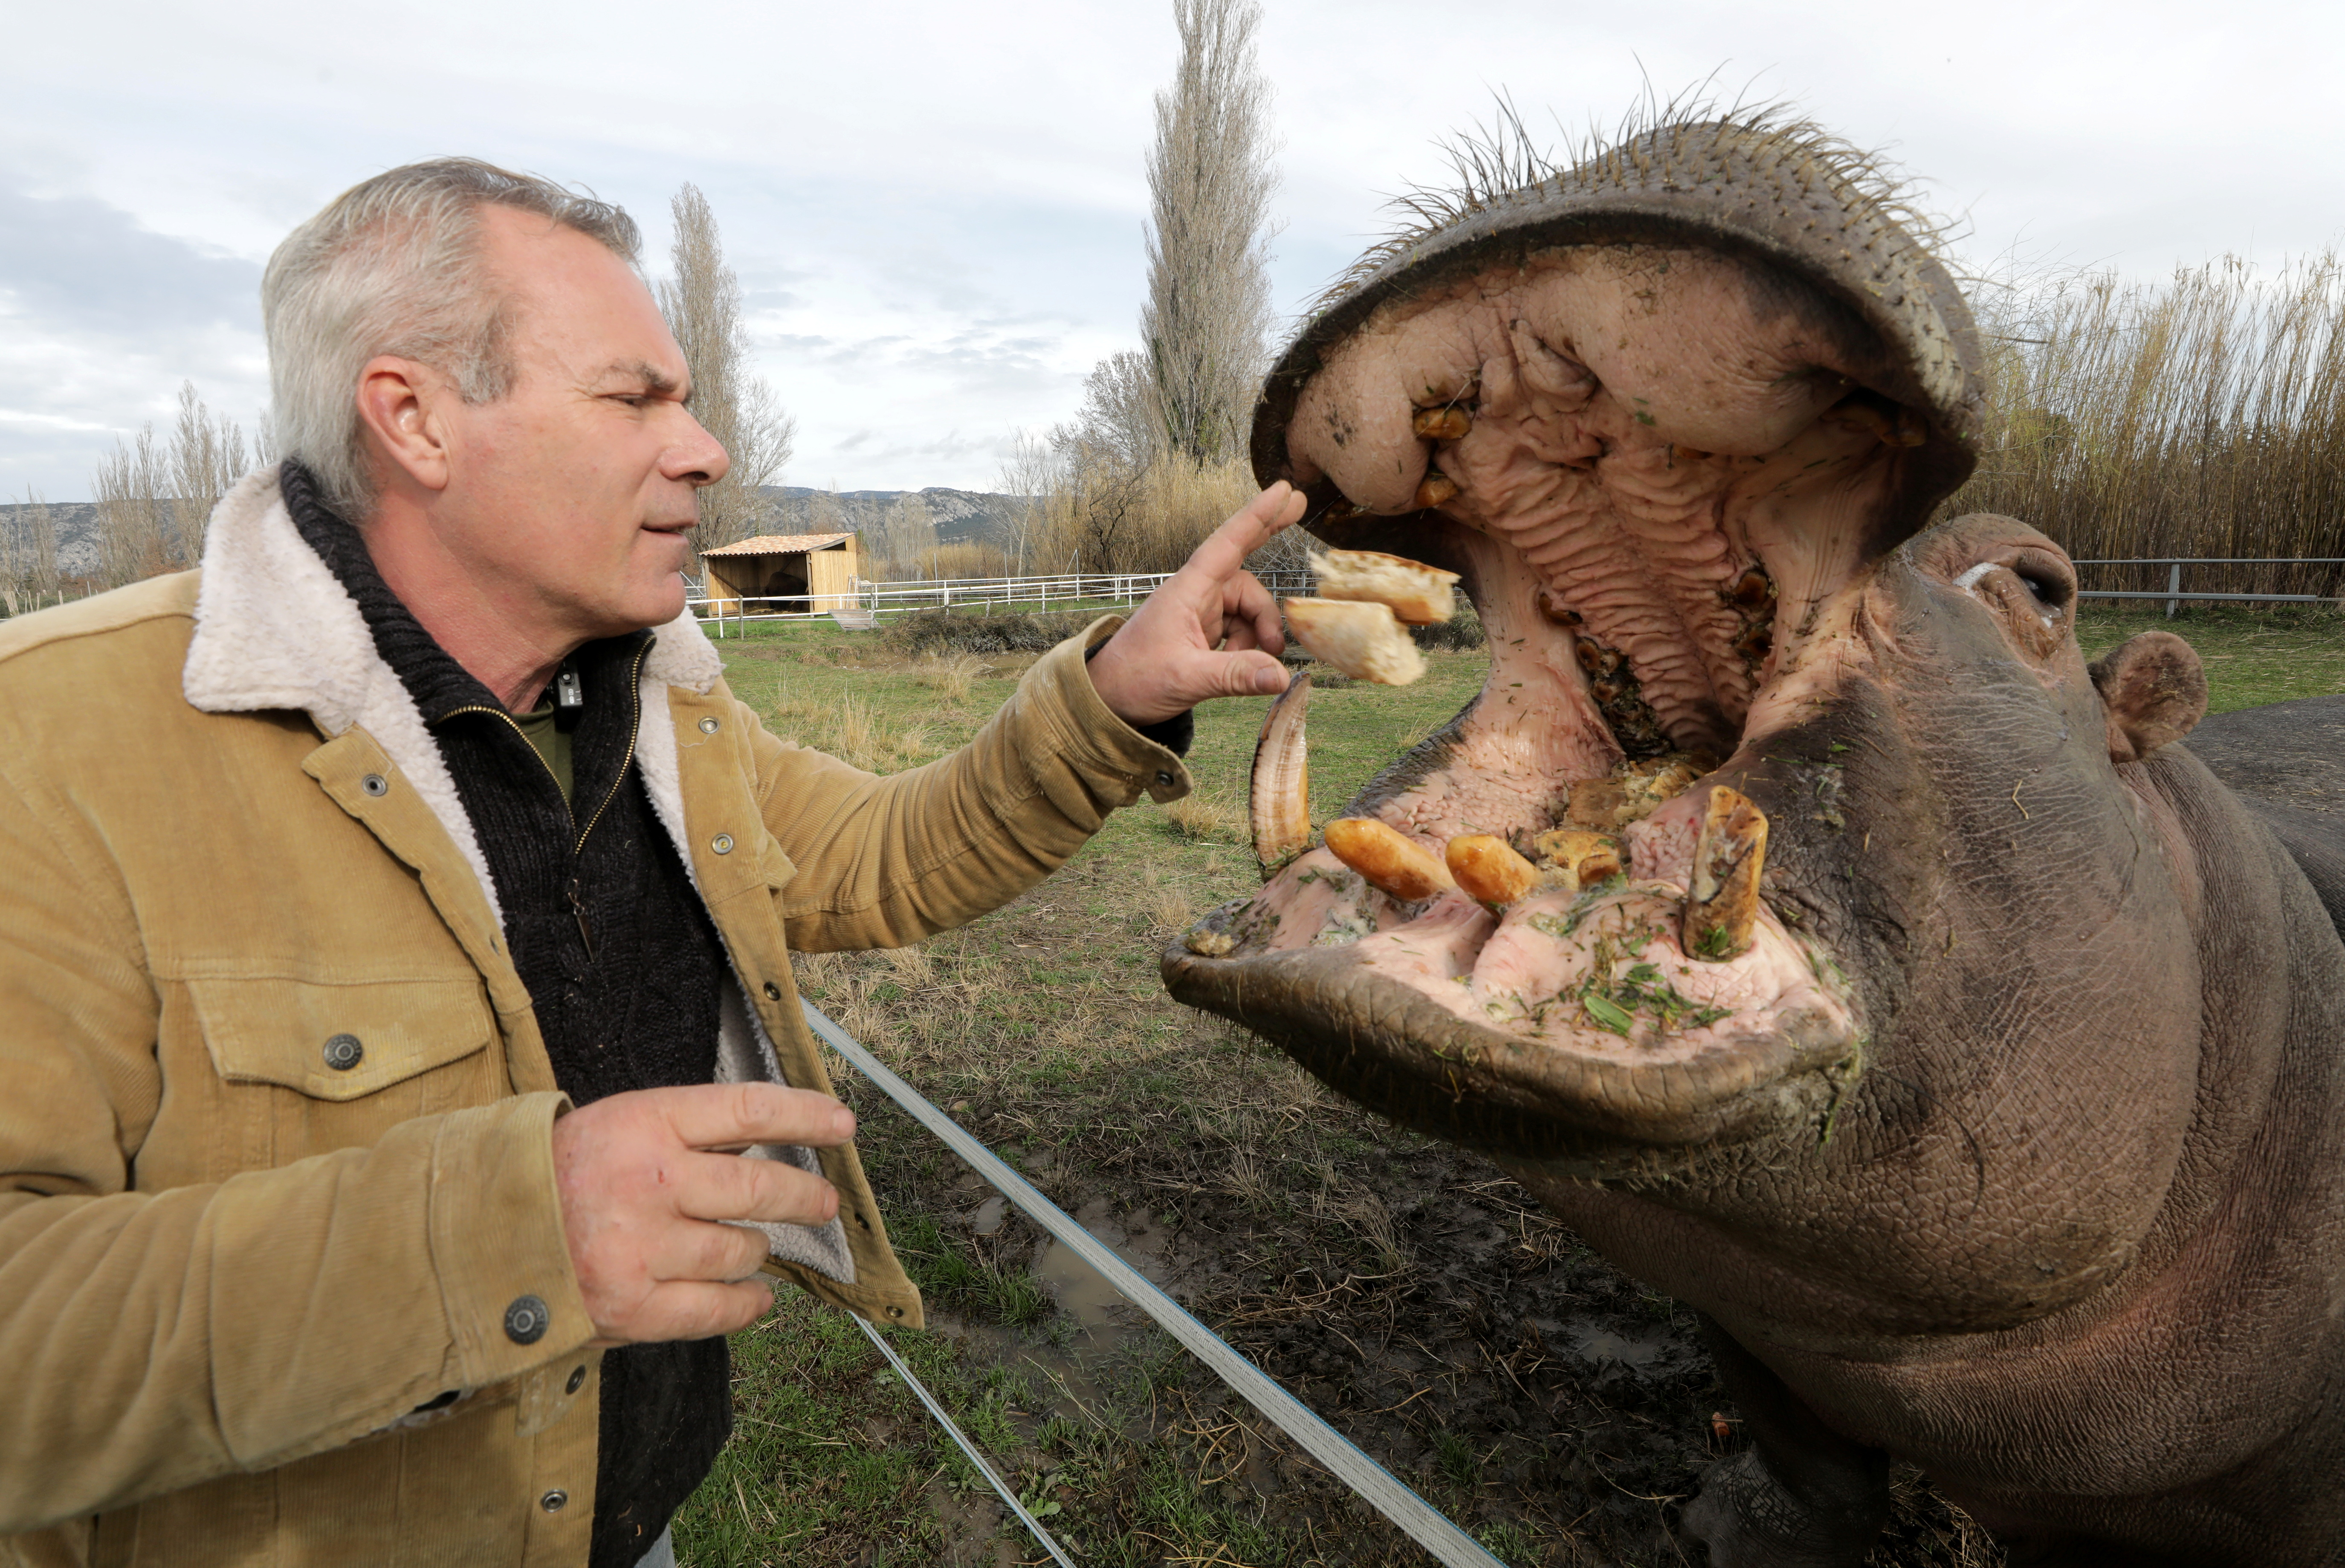 William Kerwich, owner of the Royal Circus and President of the Circus and Shows Animals Union, feeds Molly the hippopotamus at the circus home base in Senas as circus shows remained shut as part of COVID-19 restrictions measures to fight the coronavirus disease outbreak in France, February 9, 2021. REUTERS/Eric Gaillard